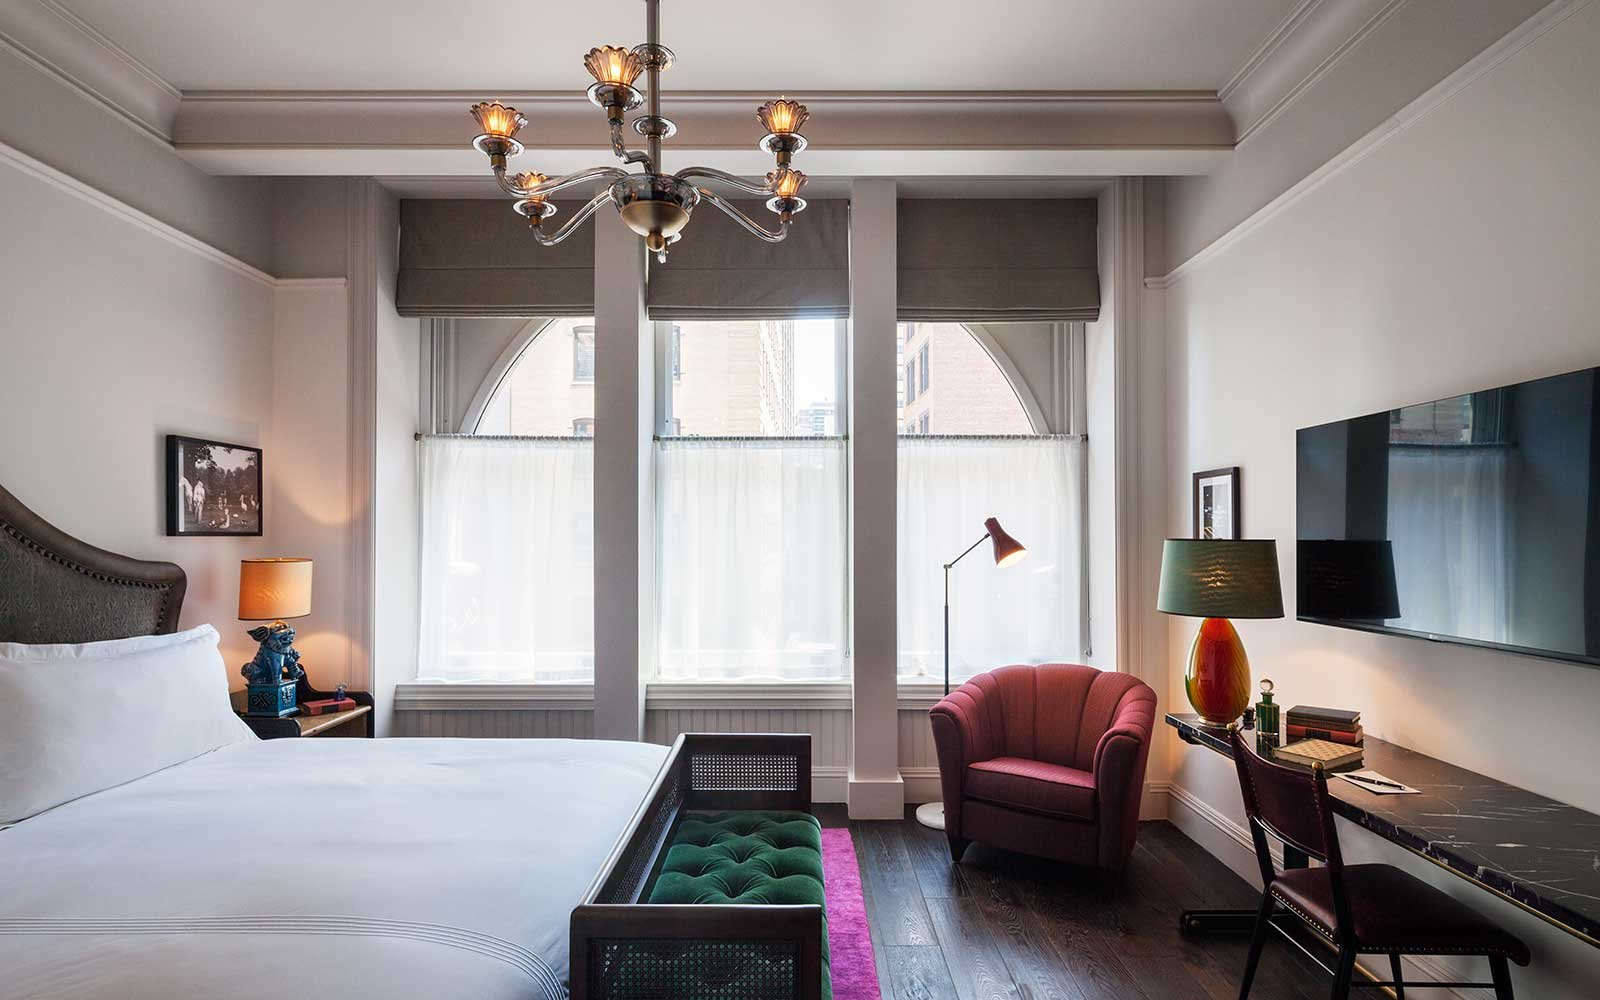 The Beekman, A Thompson Hotel in New York City